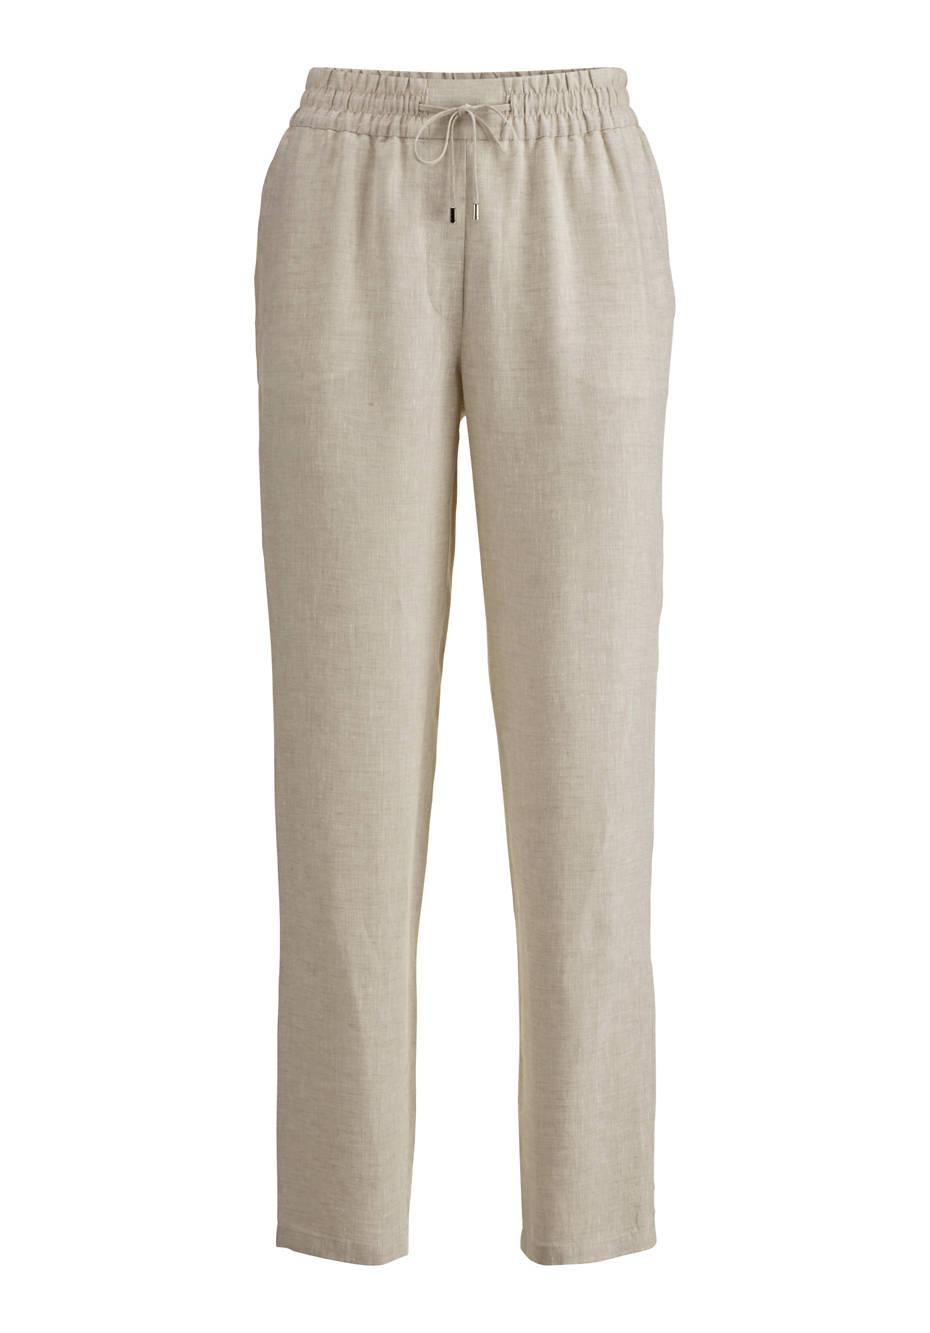 Pants made from pure organic linen